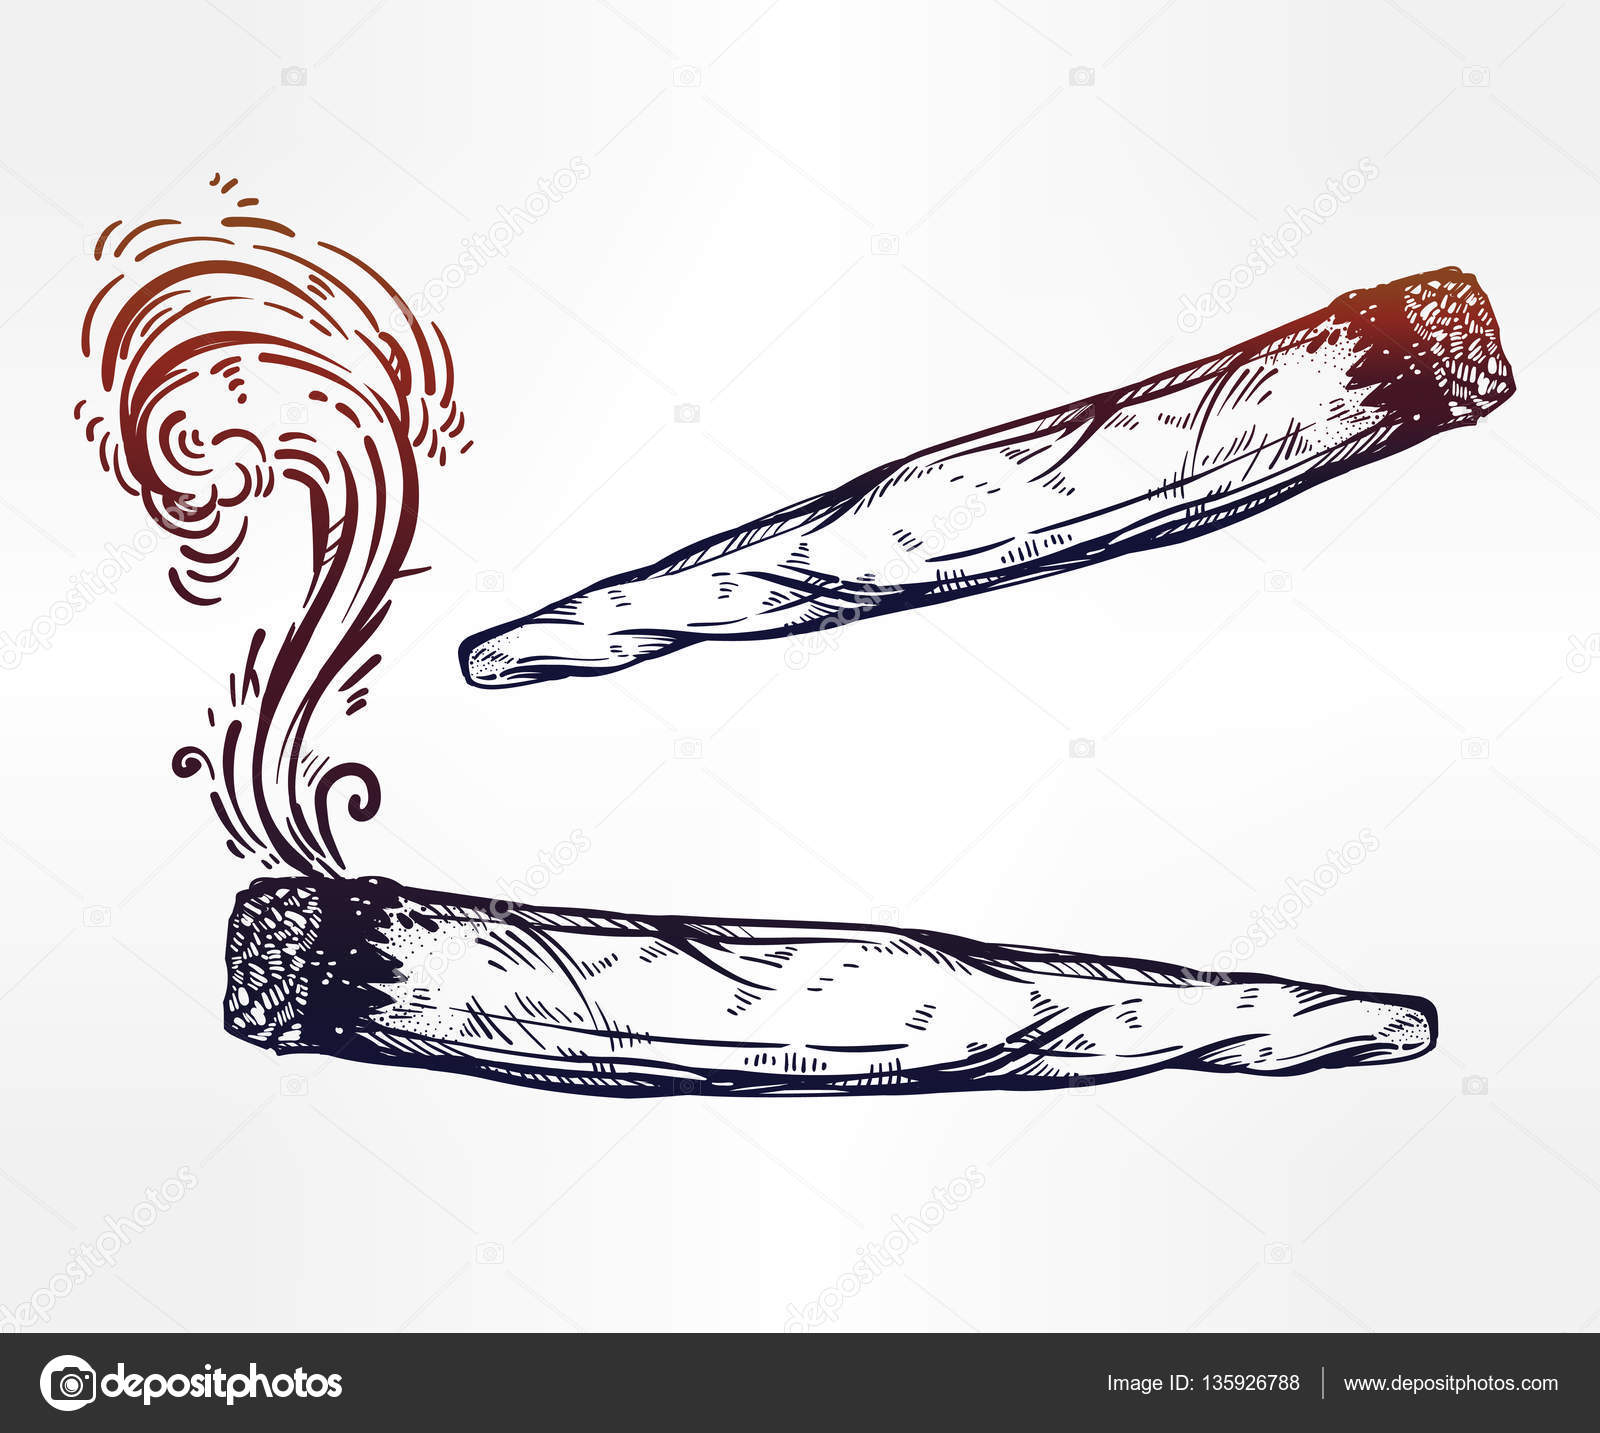 1600x1433 Two Kinds Of Weed Joint Or Spliff Drawings. Stock Vector